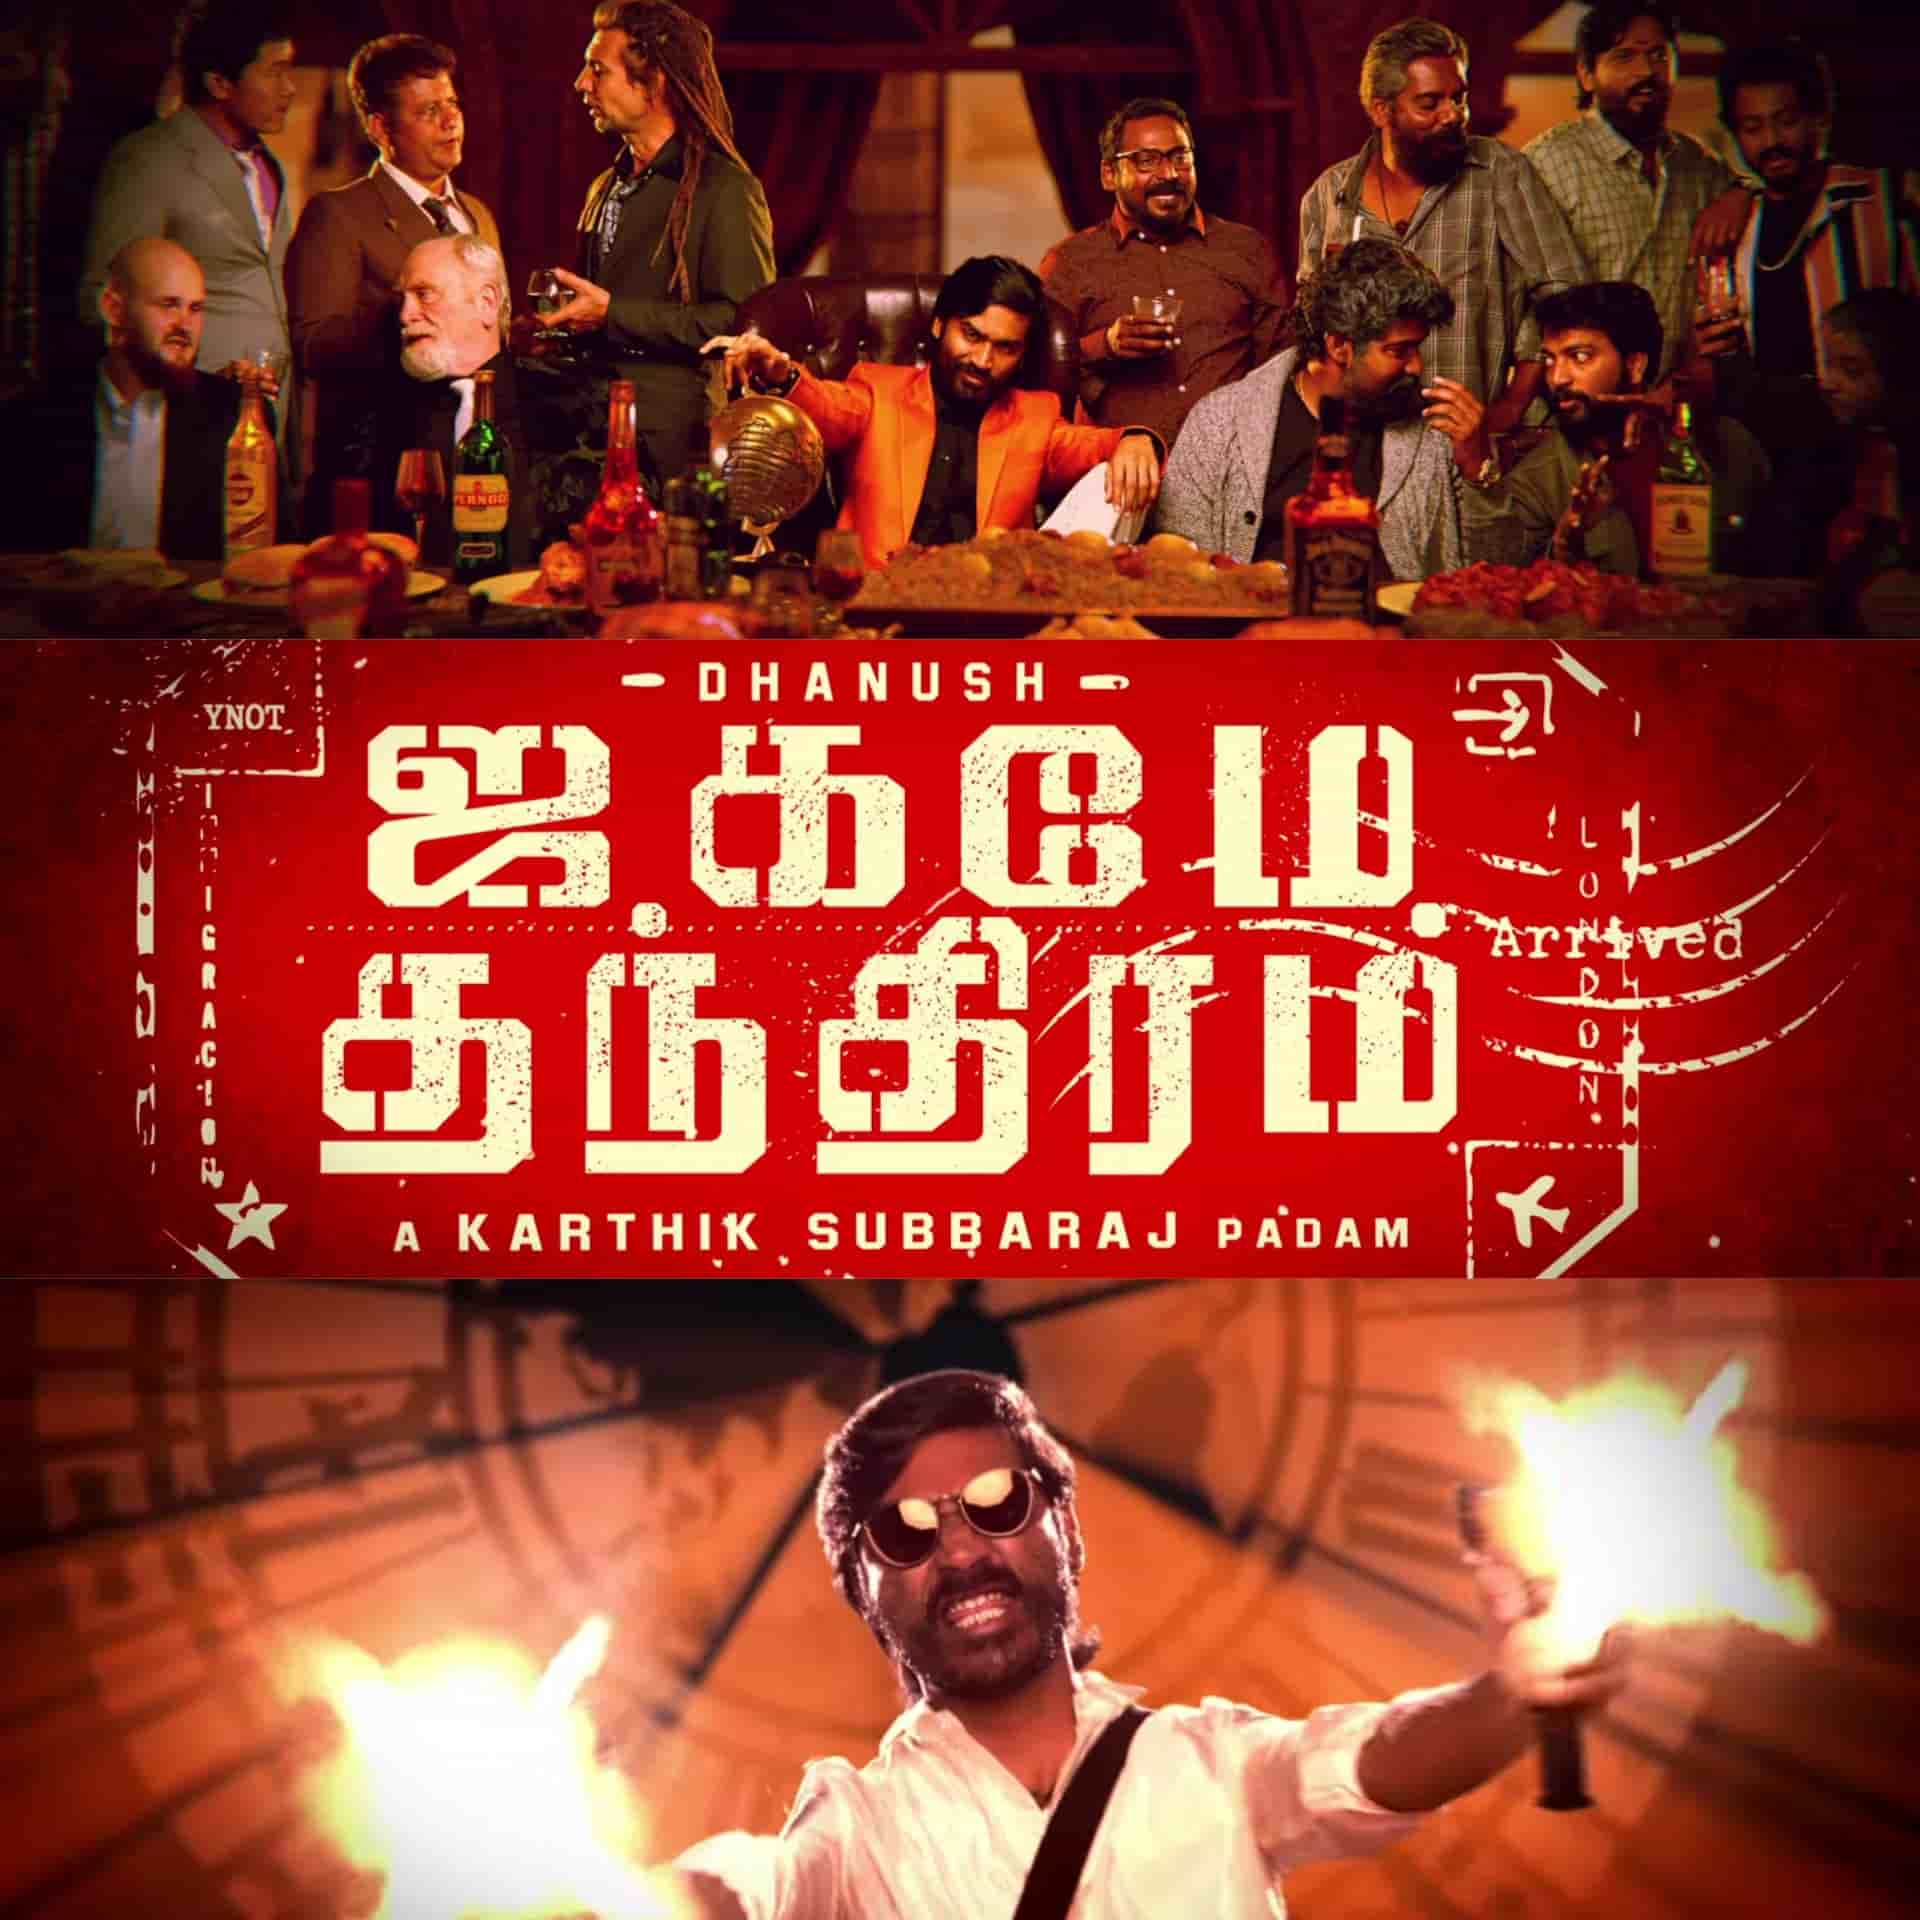 Jagame Thanthiram first second look poster is here directed by Karthik Subbaraj